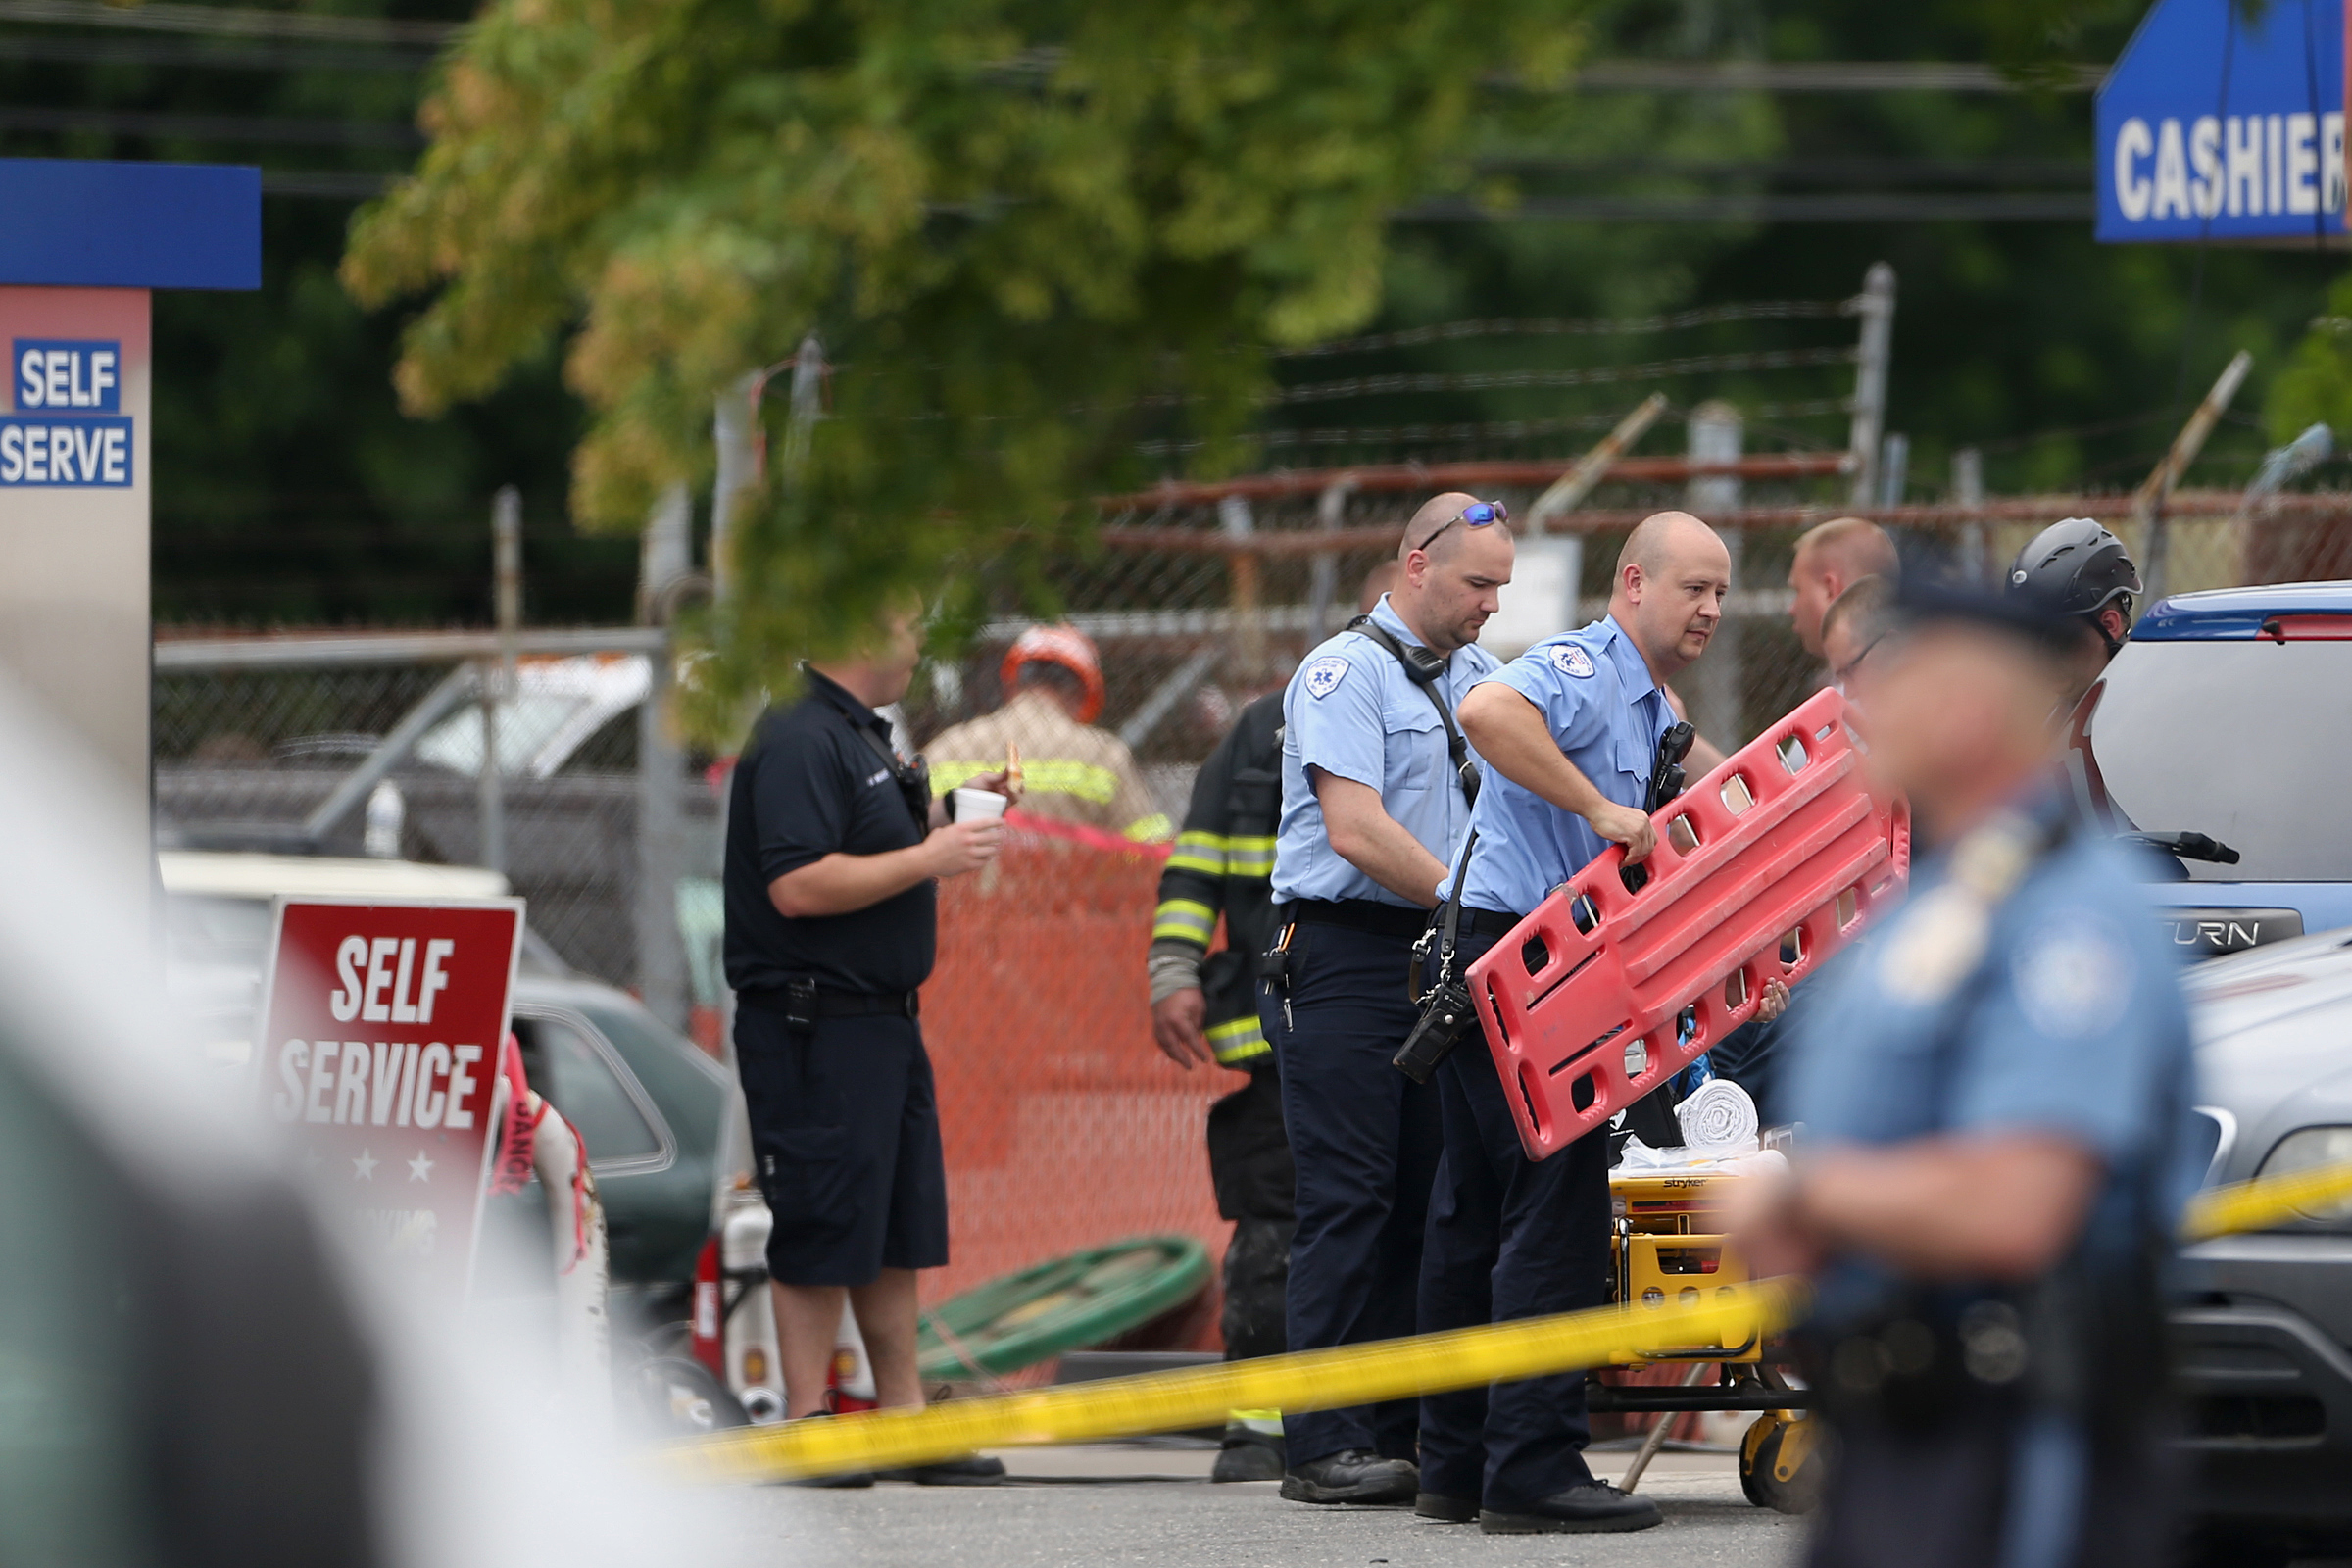 Crews from across Bucks County aided in the efforts to recover Joe Vigilante´s body Wednesday.